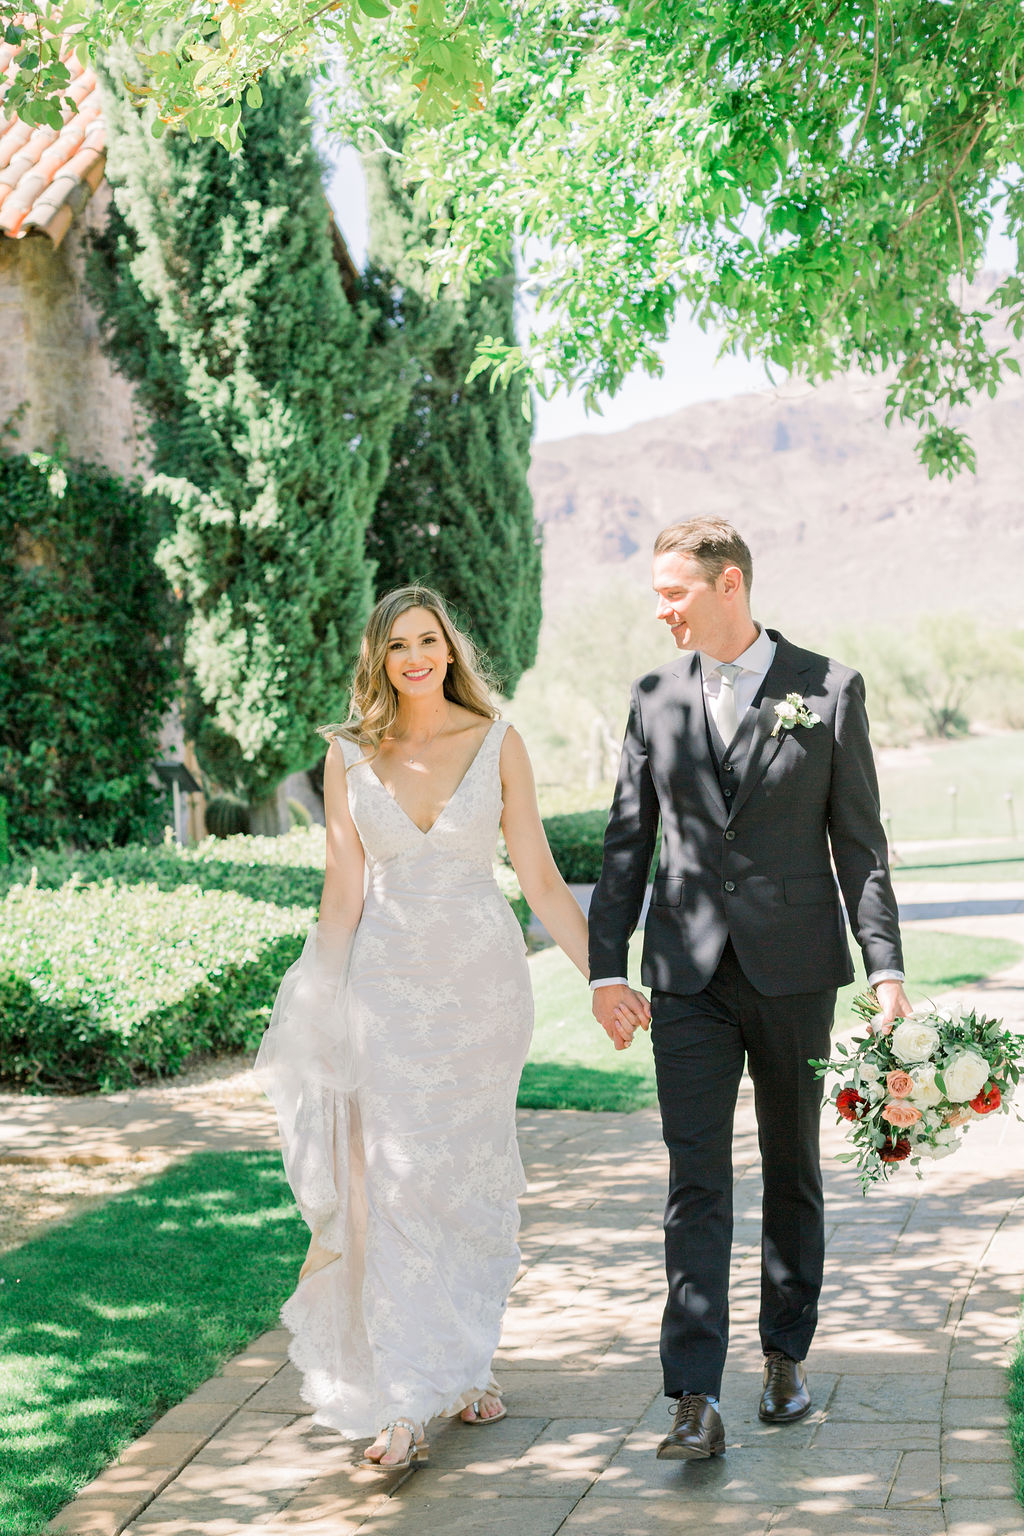 Superstition Mountain Destination Wedding - Arizona Wedding Florist - Phoenix, Scottsdale, Sedona - Bride and Groom Portrait Inspiration